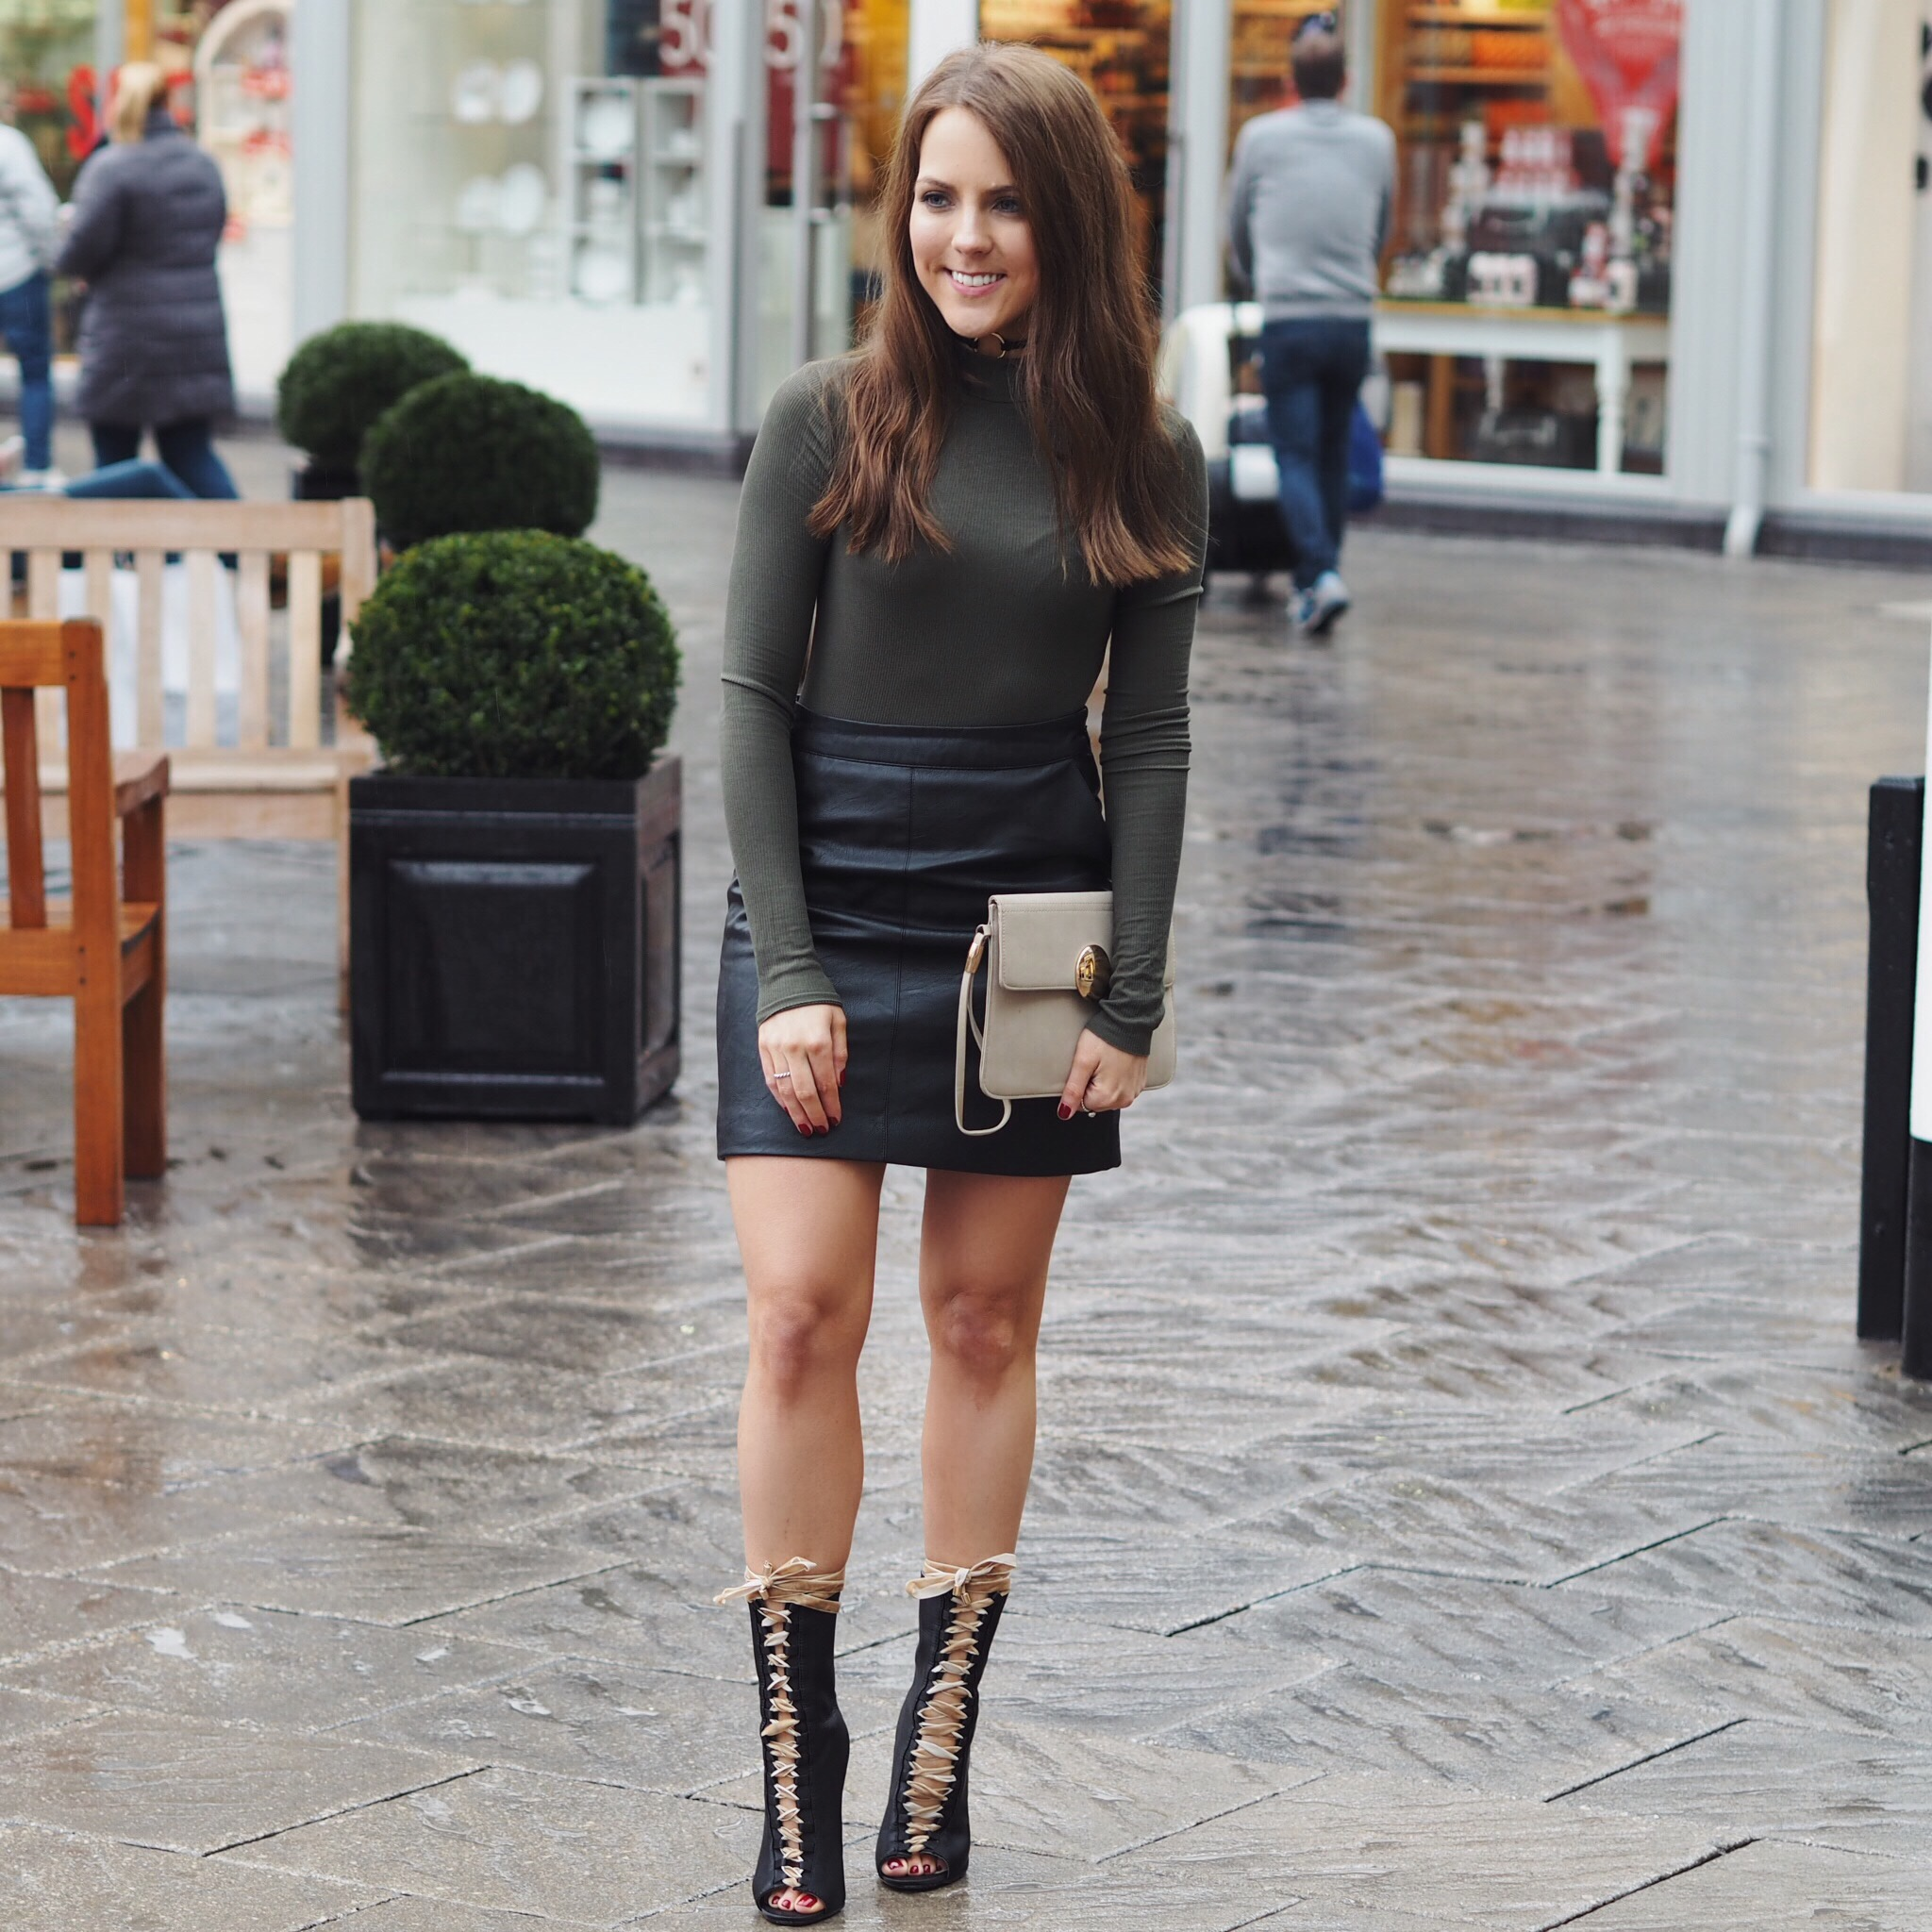 f89f5c74767 Zara khaki top, Topshop black leather skirt and Ego lace-up boots ...